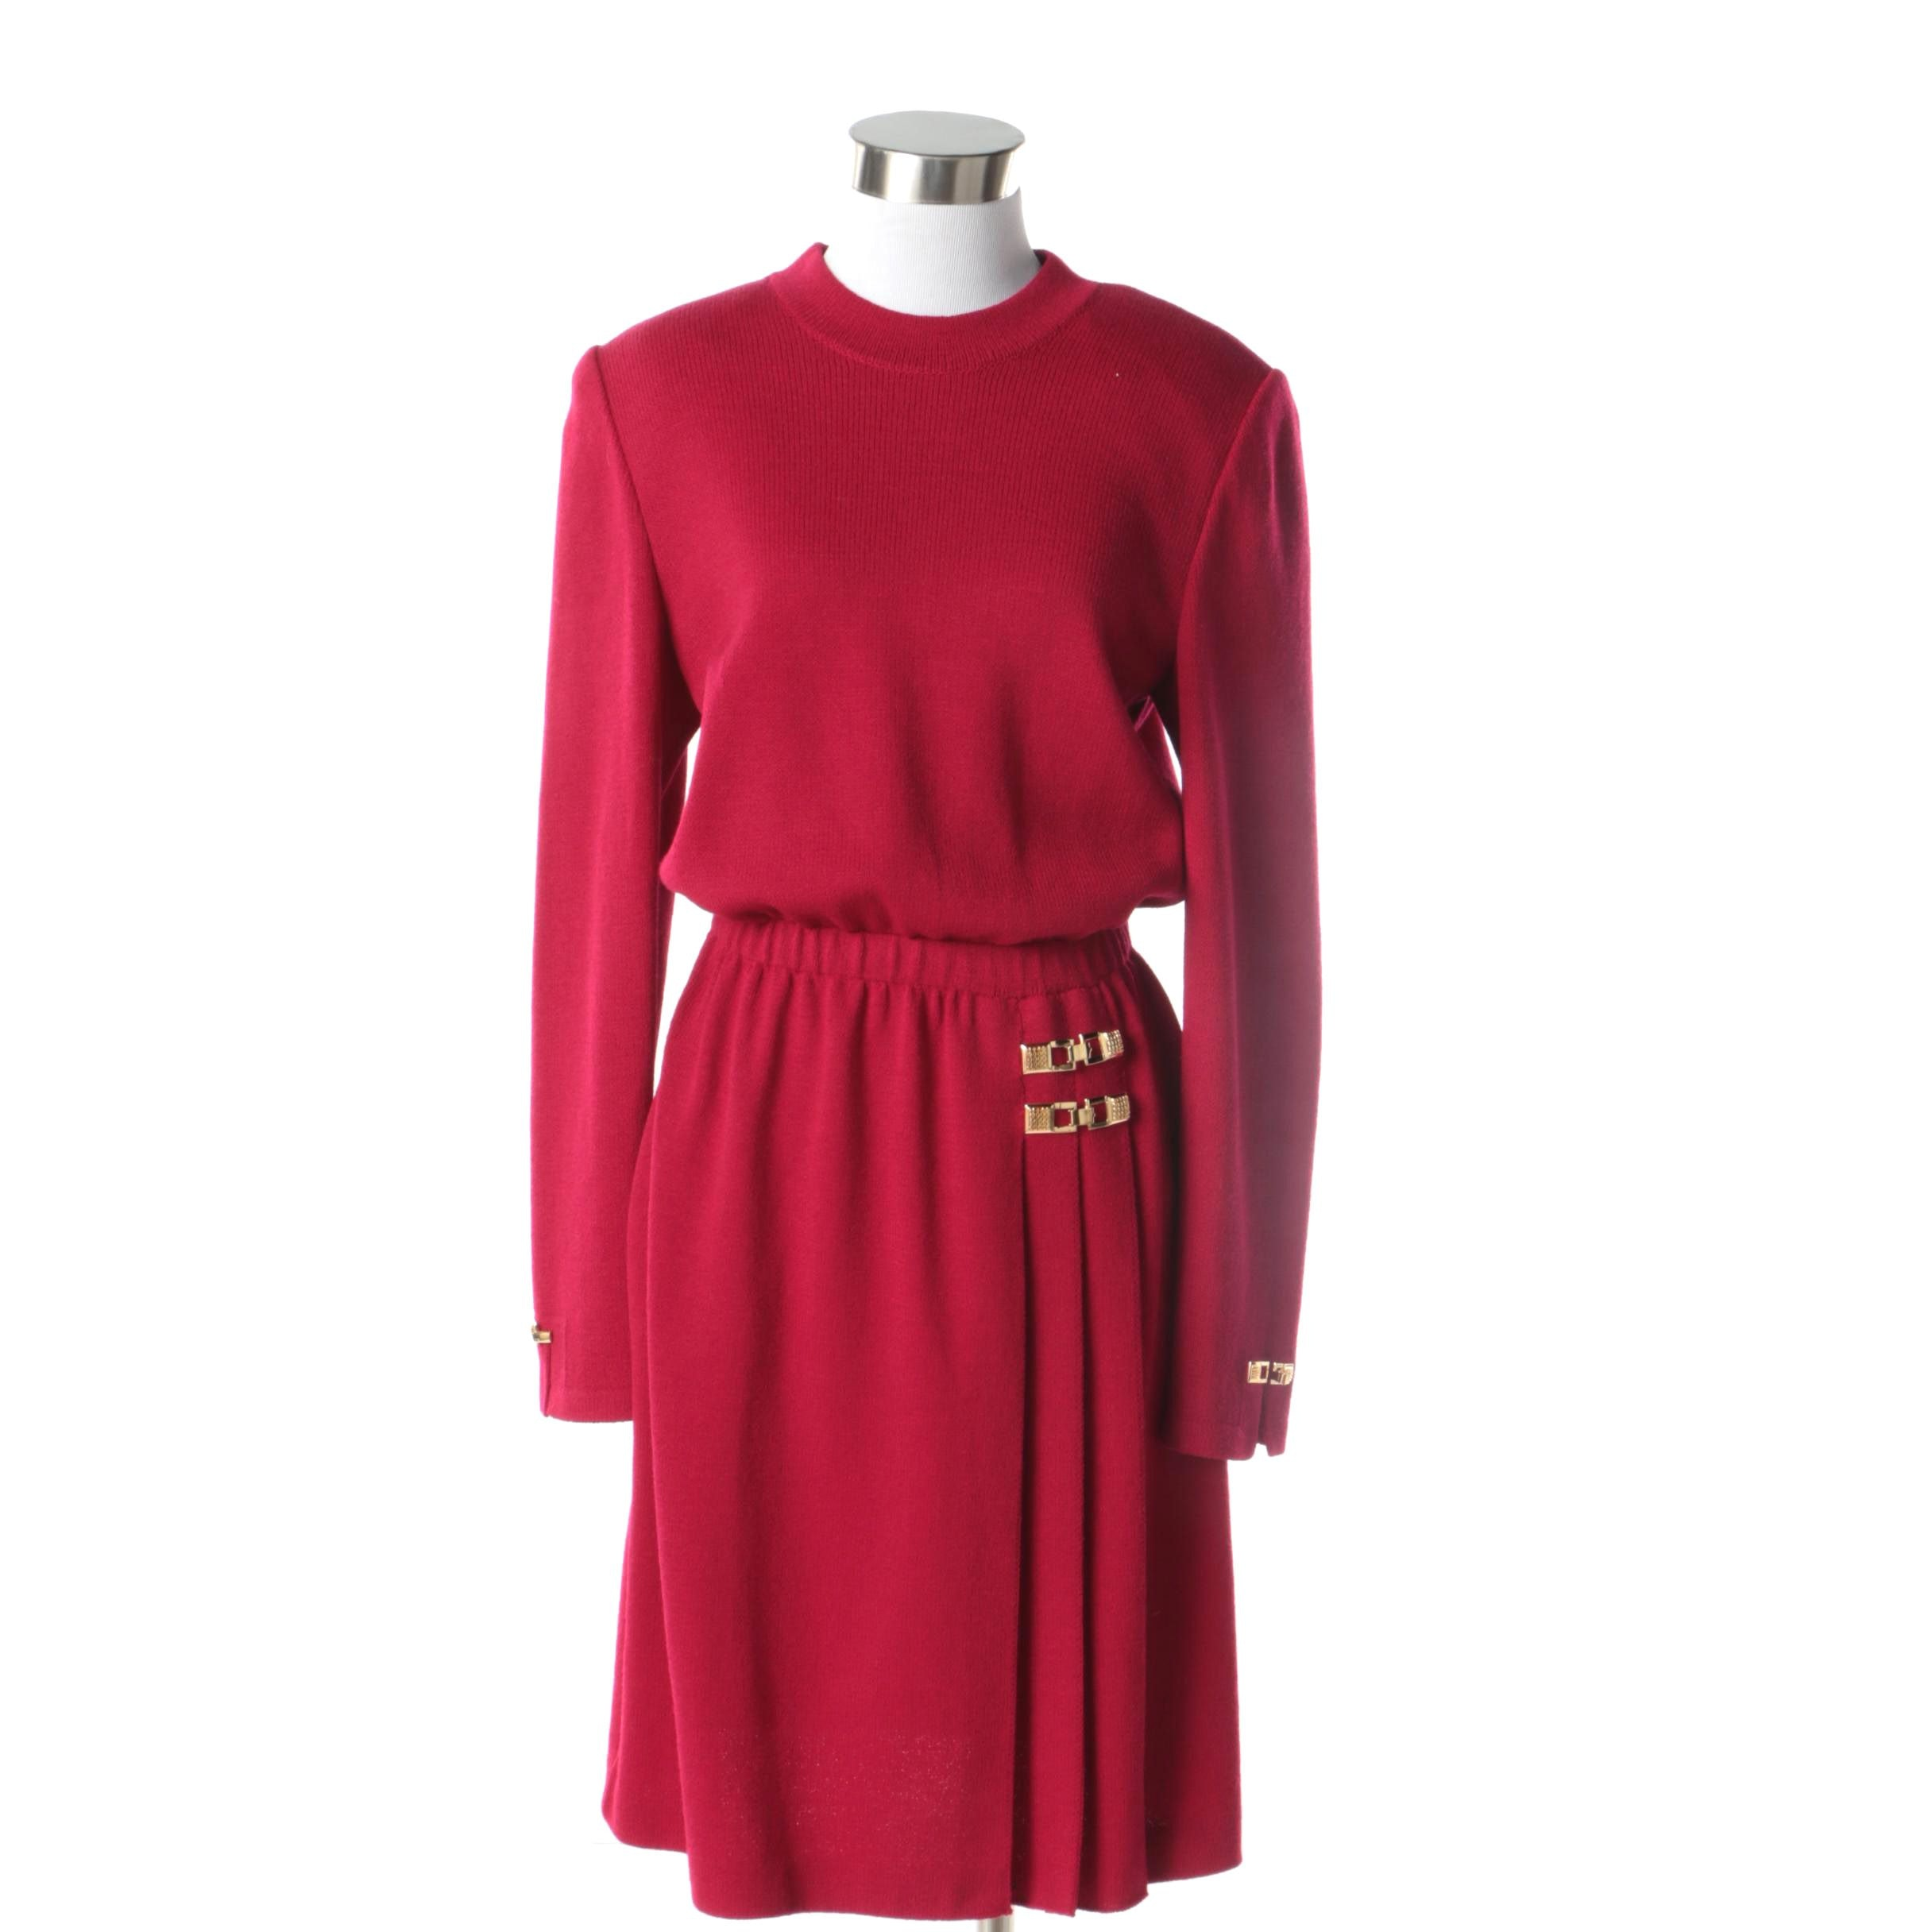 1980s Vintage St. John Couture Red Knit Dress with Gold Tone Buckle Accents